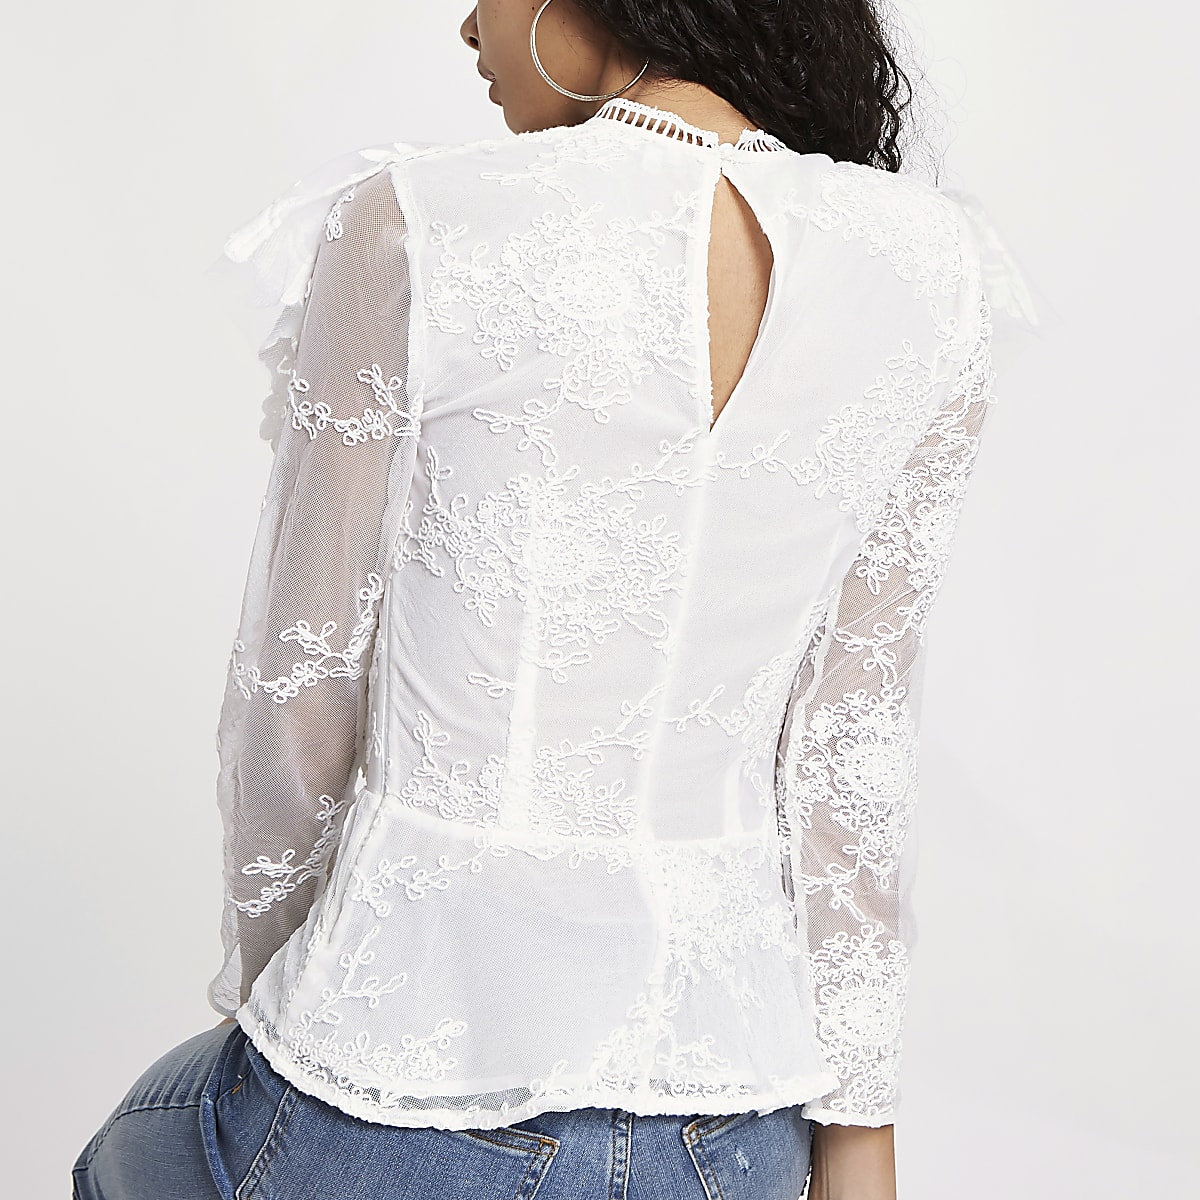 ed014d3c9430bd White lace long sleeve frill top - Blouses - Tops - women